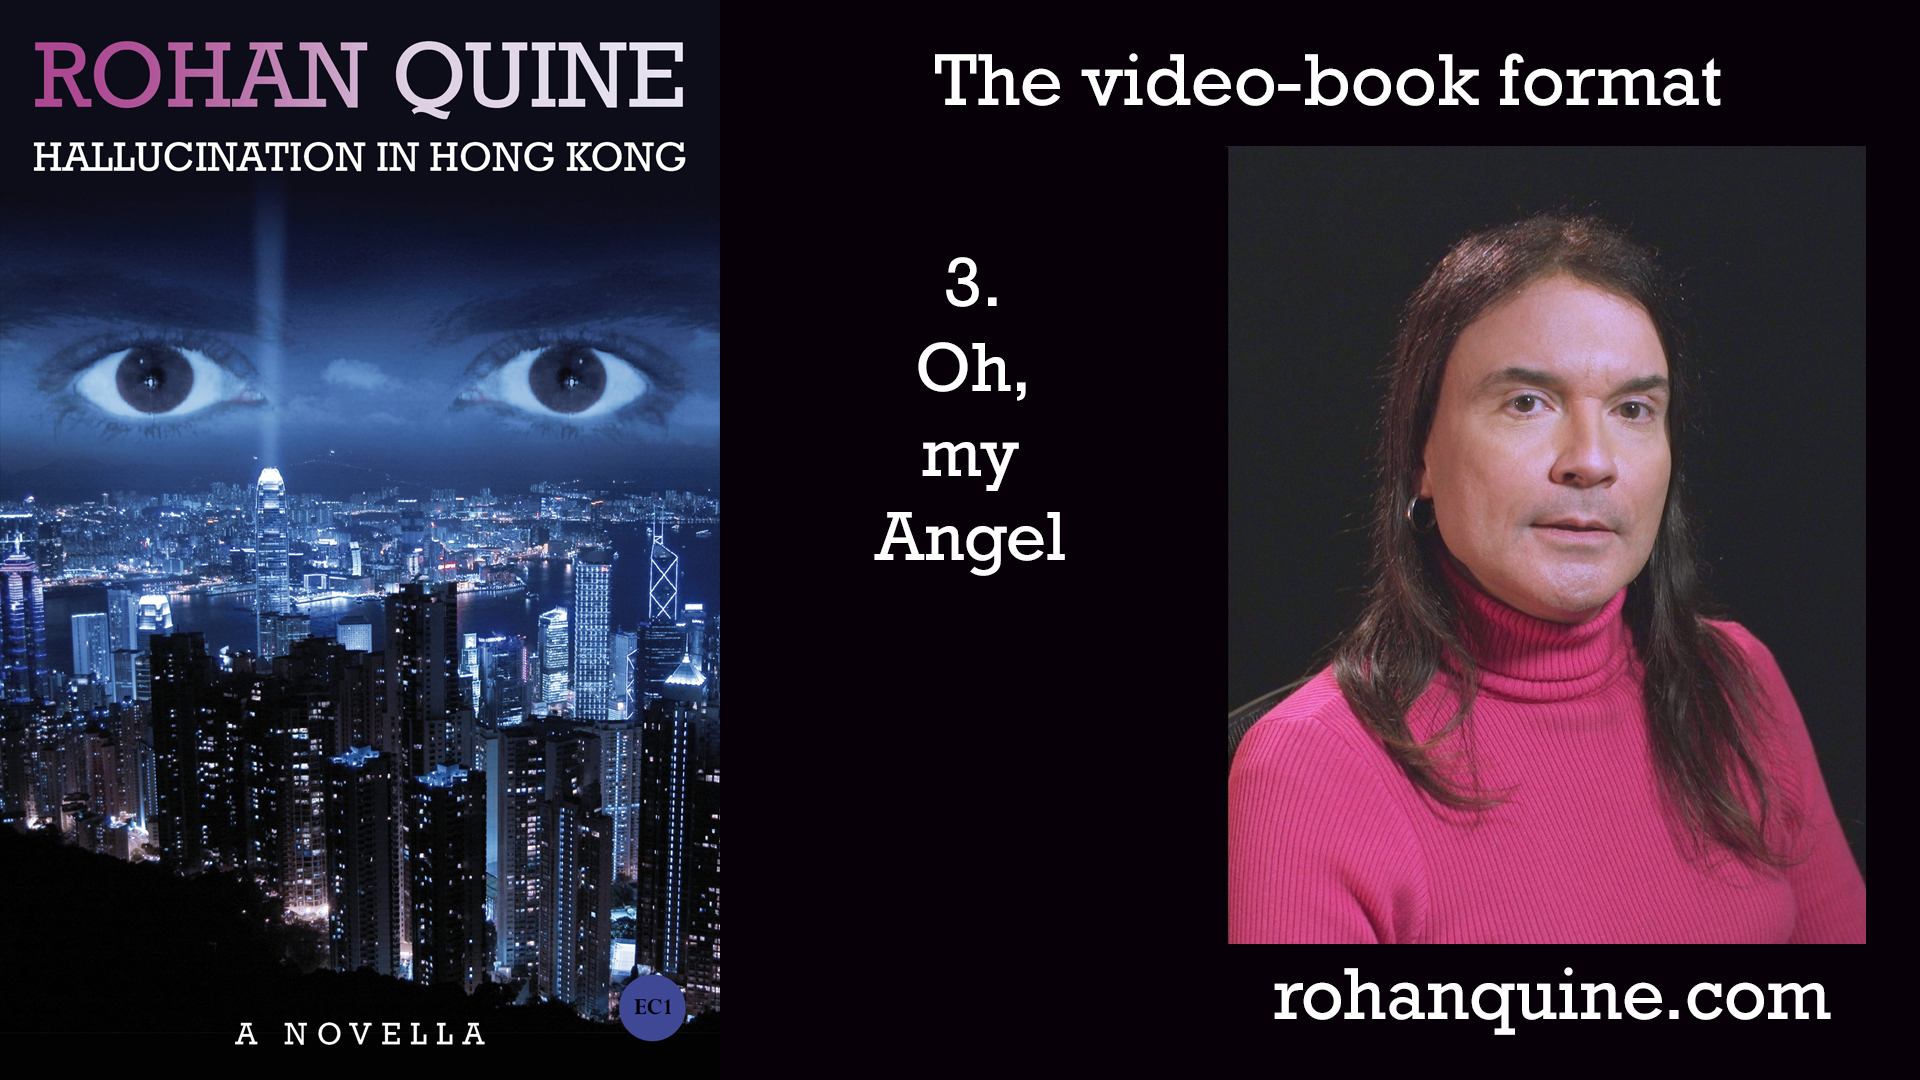 HALLUCINATION IN HONG KONG by Rohan Quine - video-book format - chapter 3